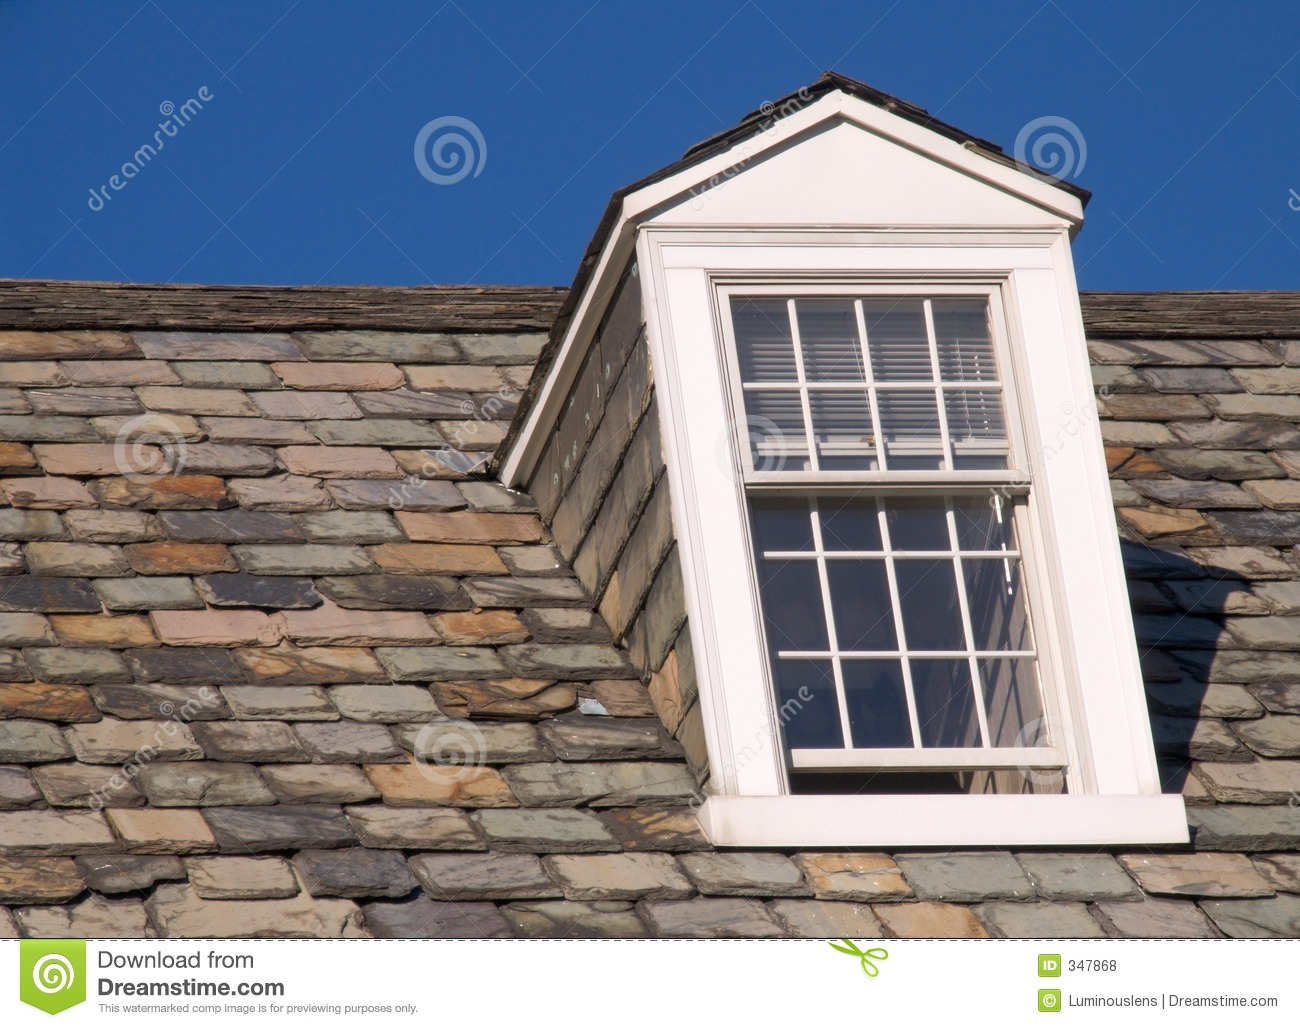 Dormer window right side royalty free stock photos for Right window